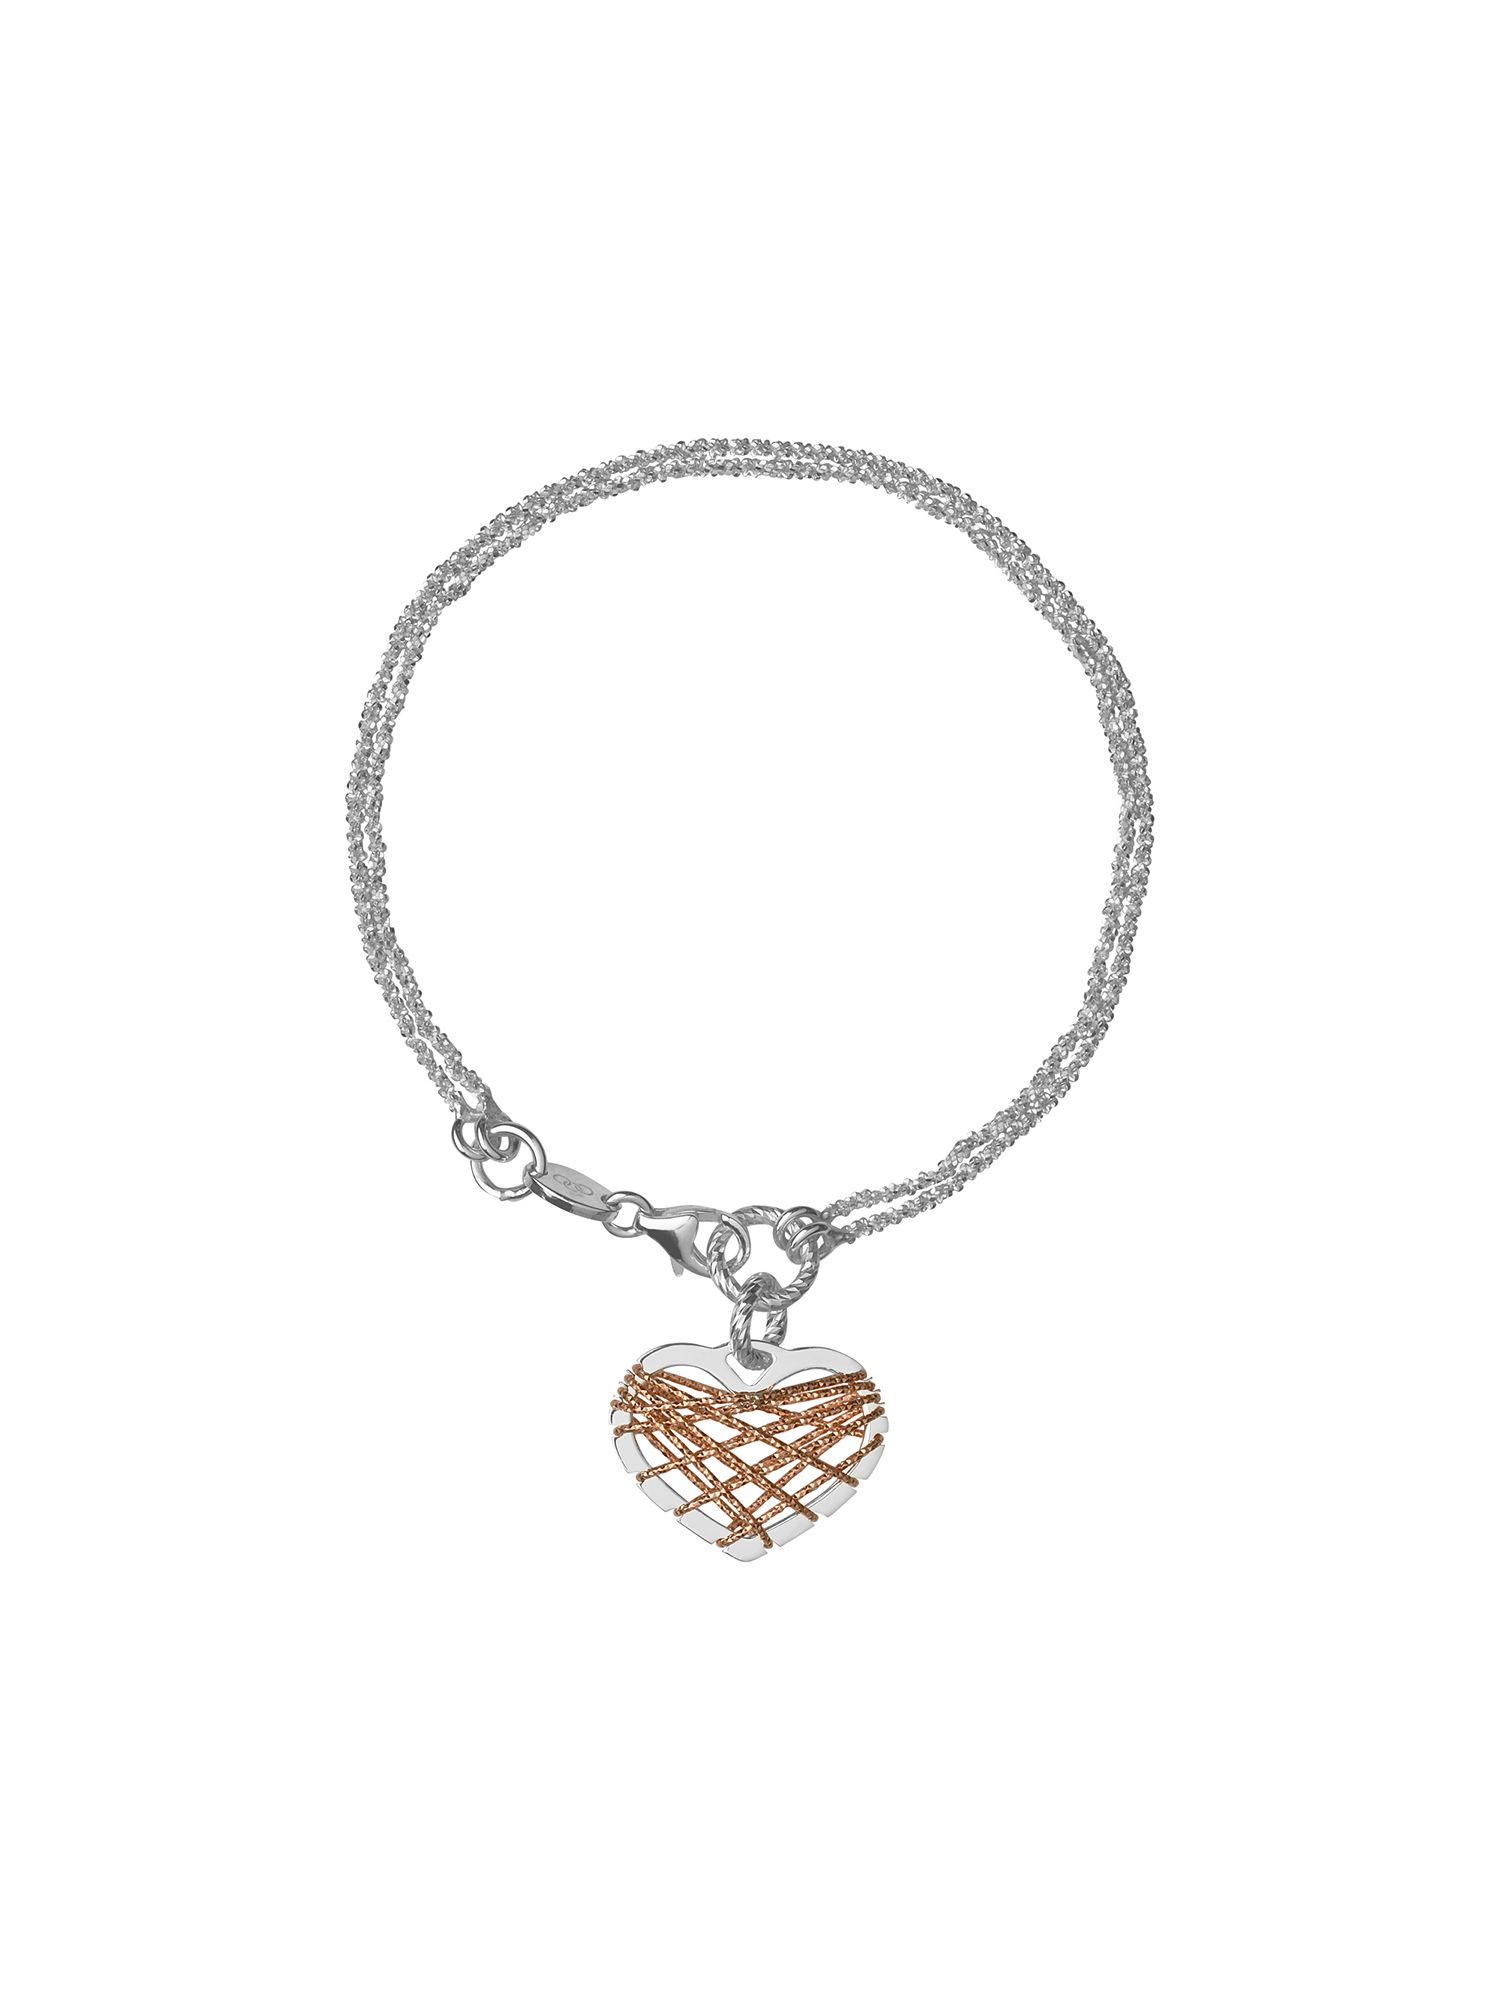 Dream catcher heart rose gold bracelet